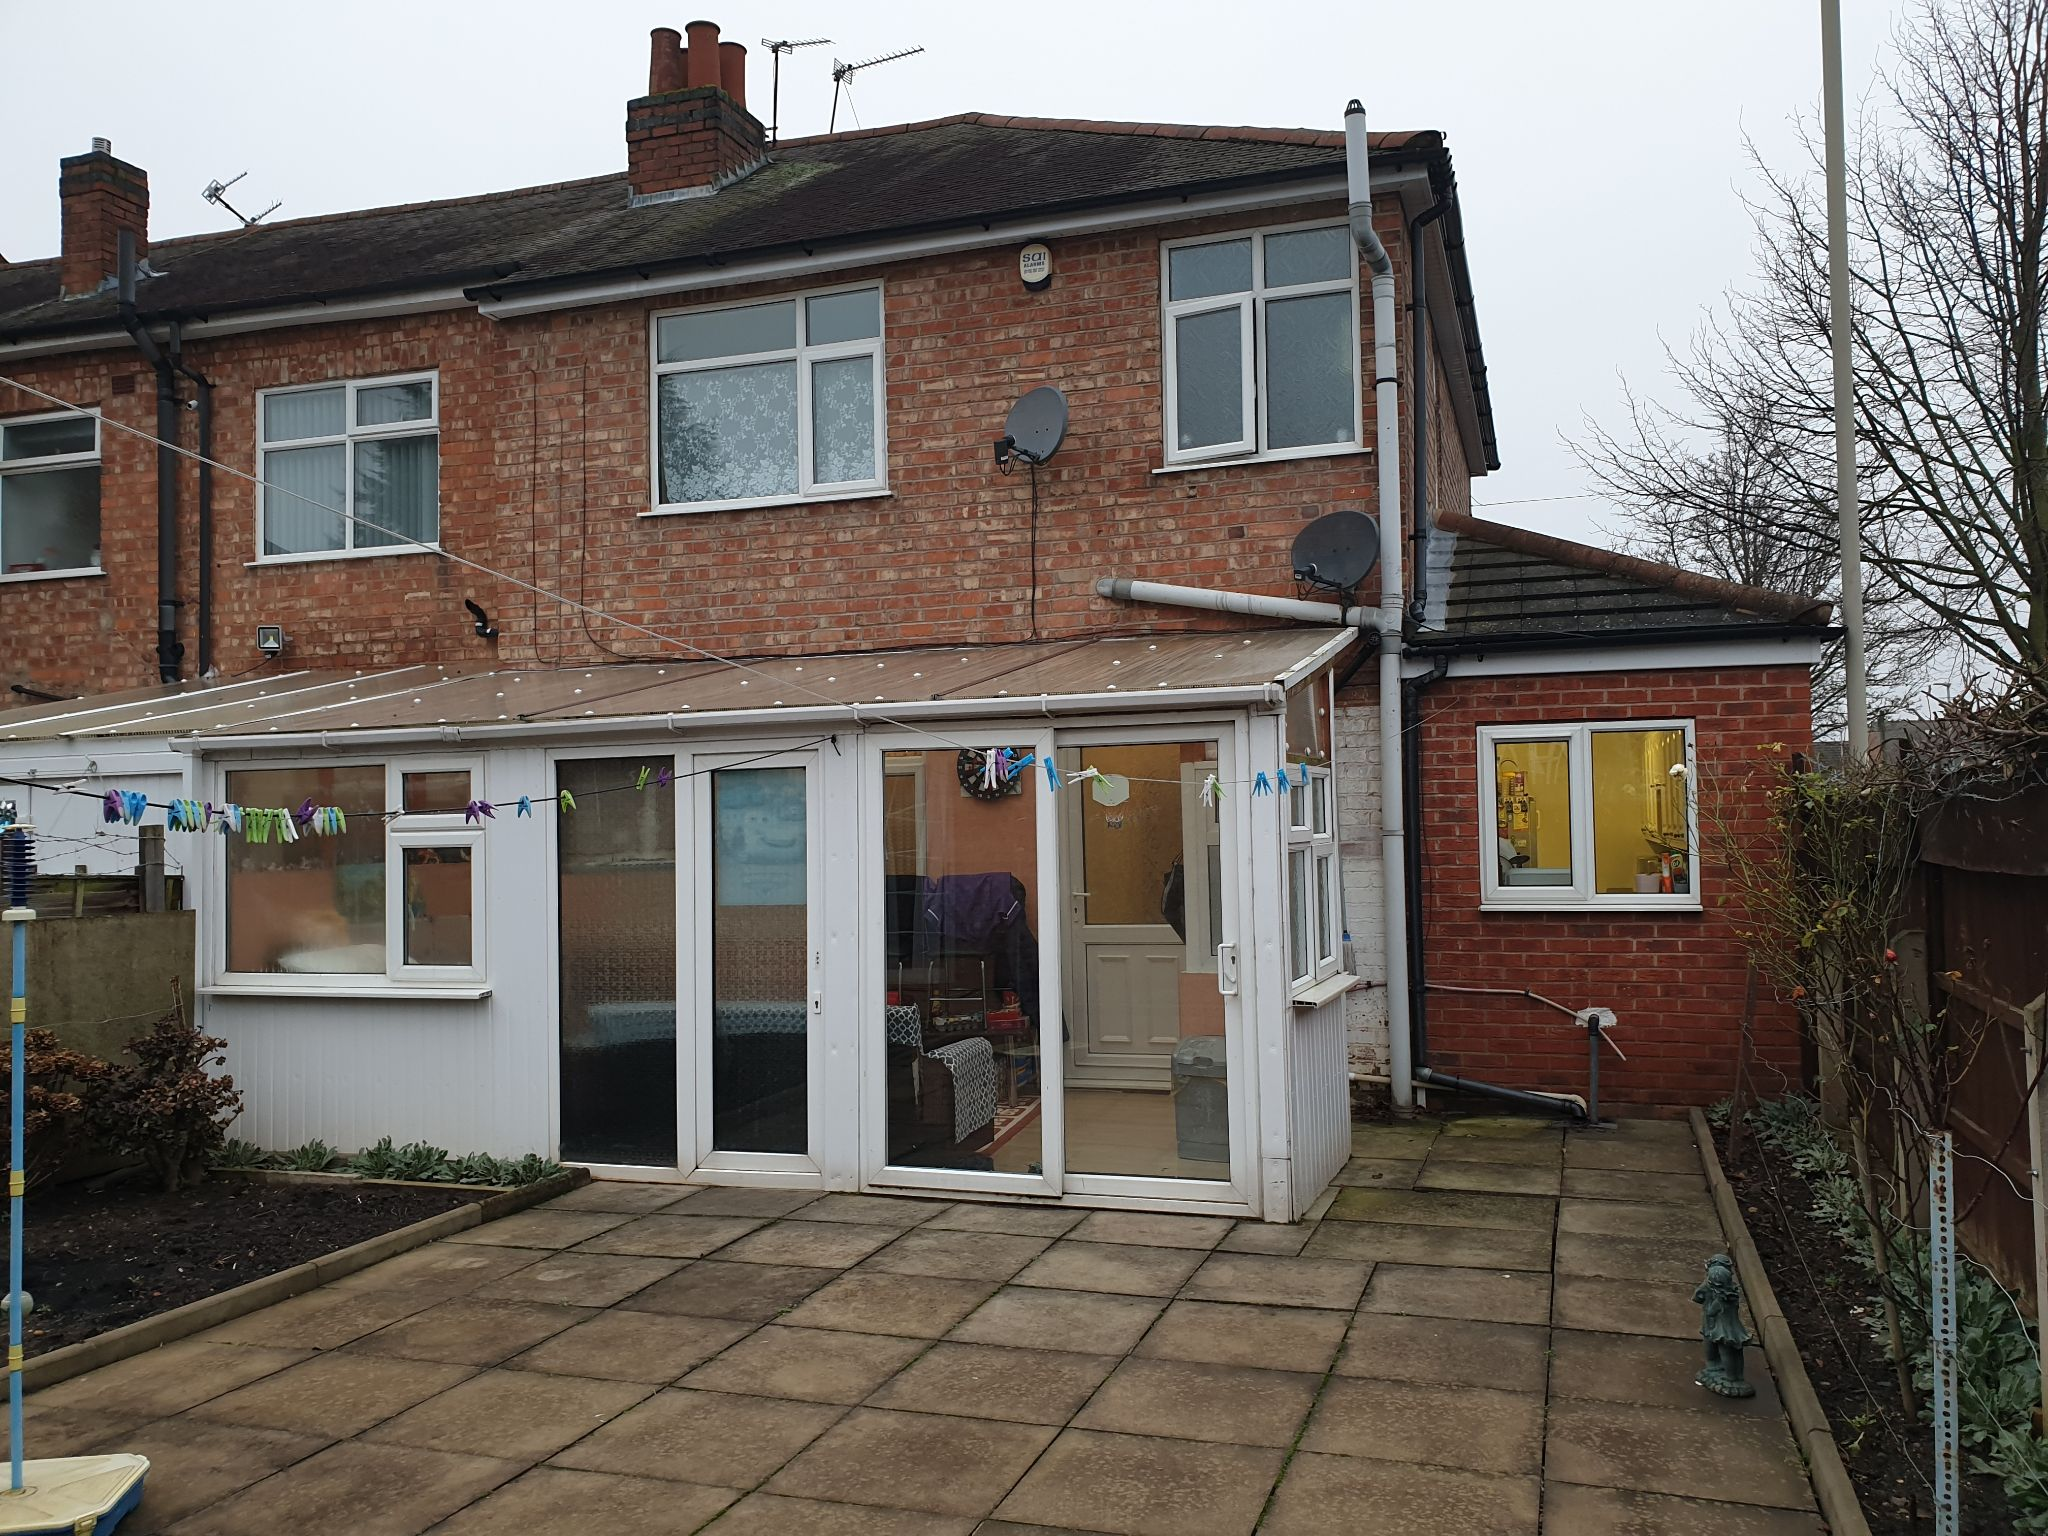 3 Bedroom End Terraced House For Sale 35 Marston Road Image 14